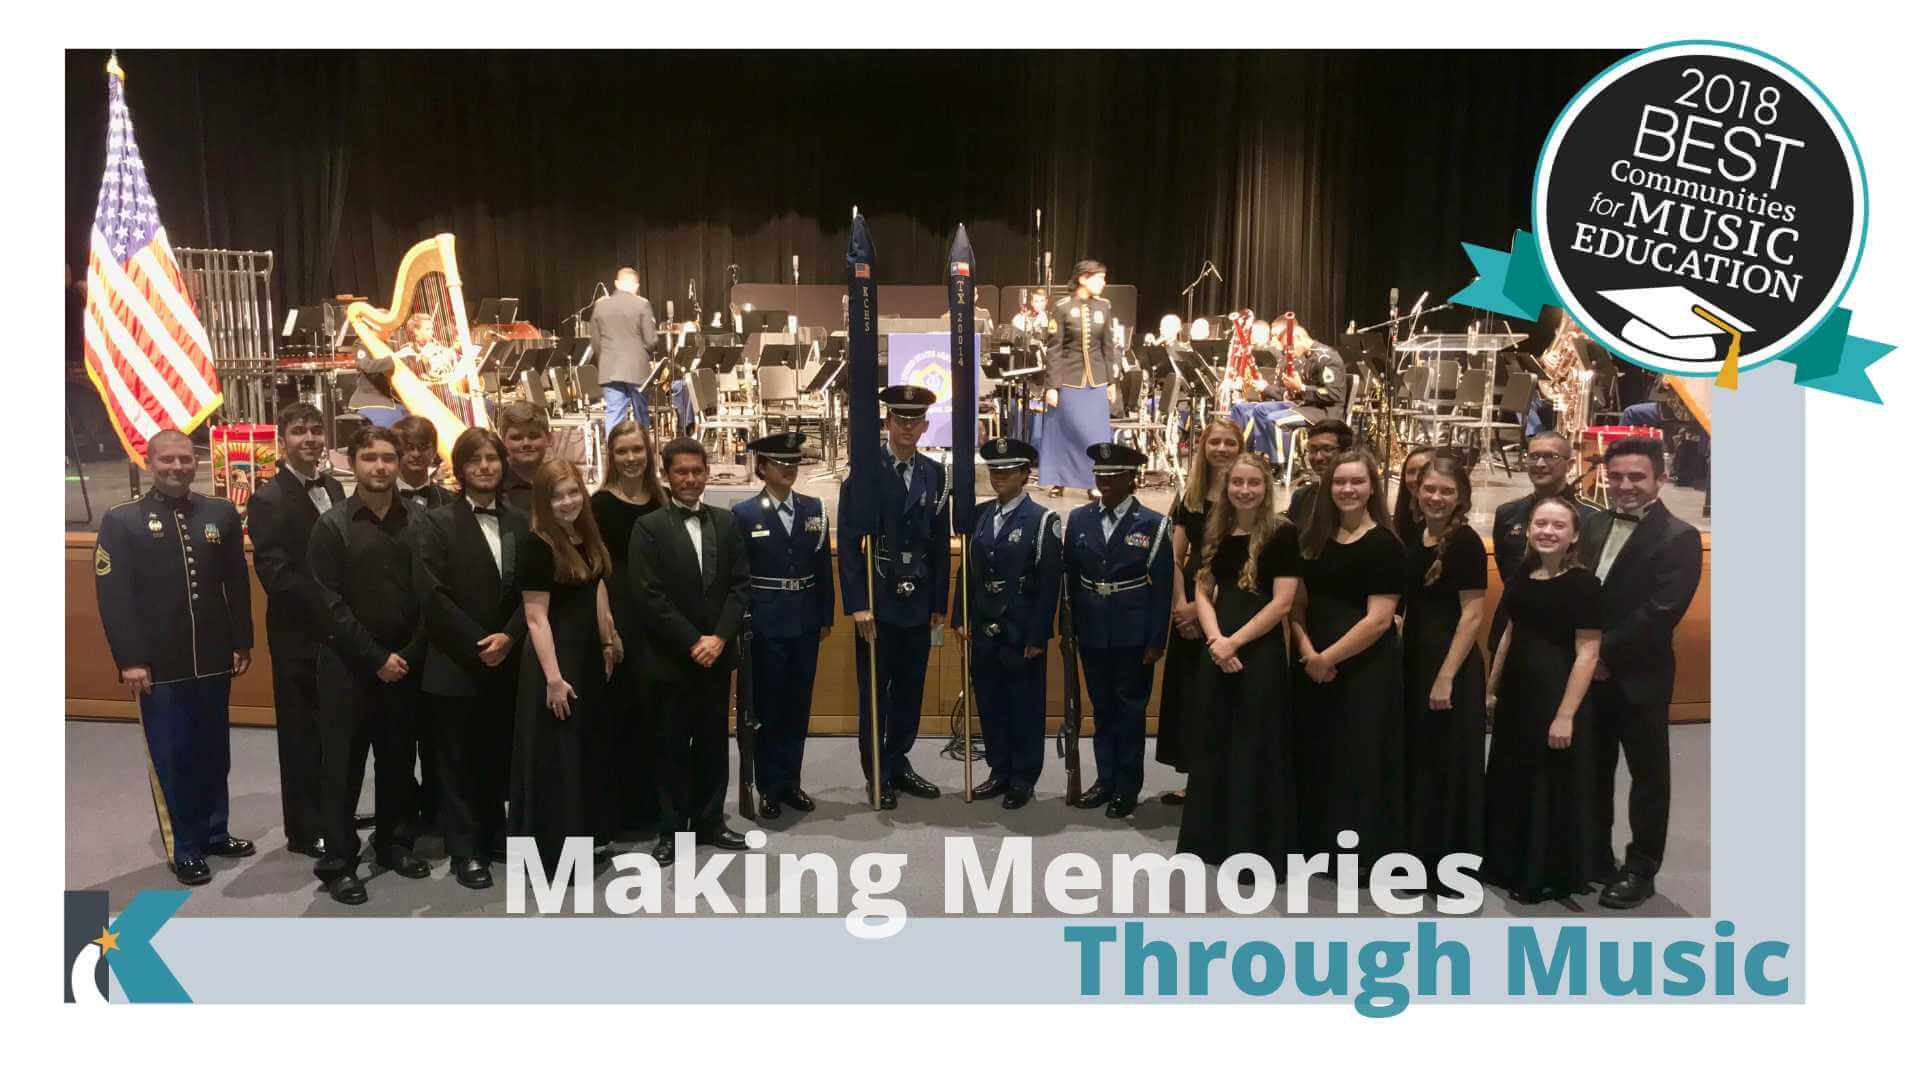 US Army Field Band and Soldiers' Chorus Perform Alongside Students